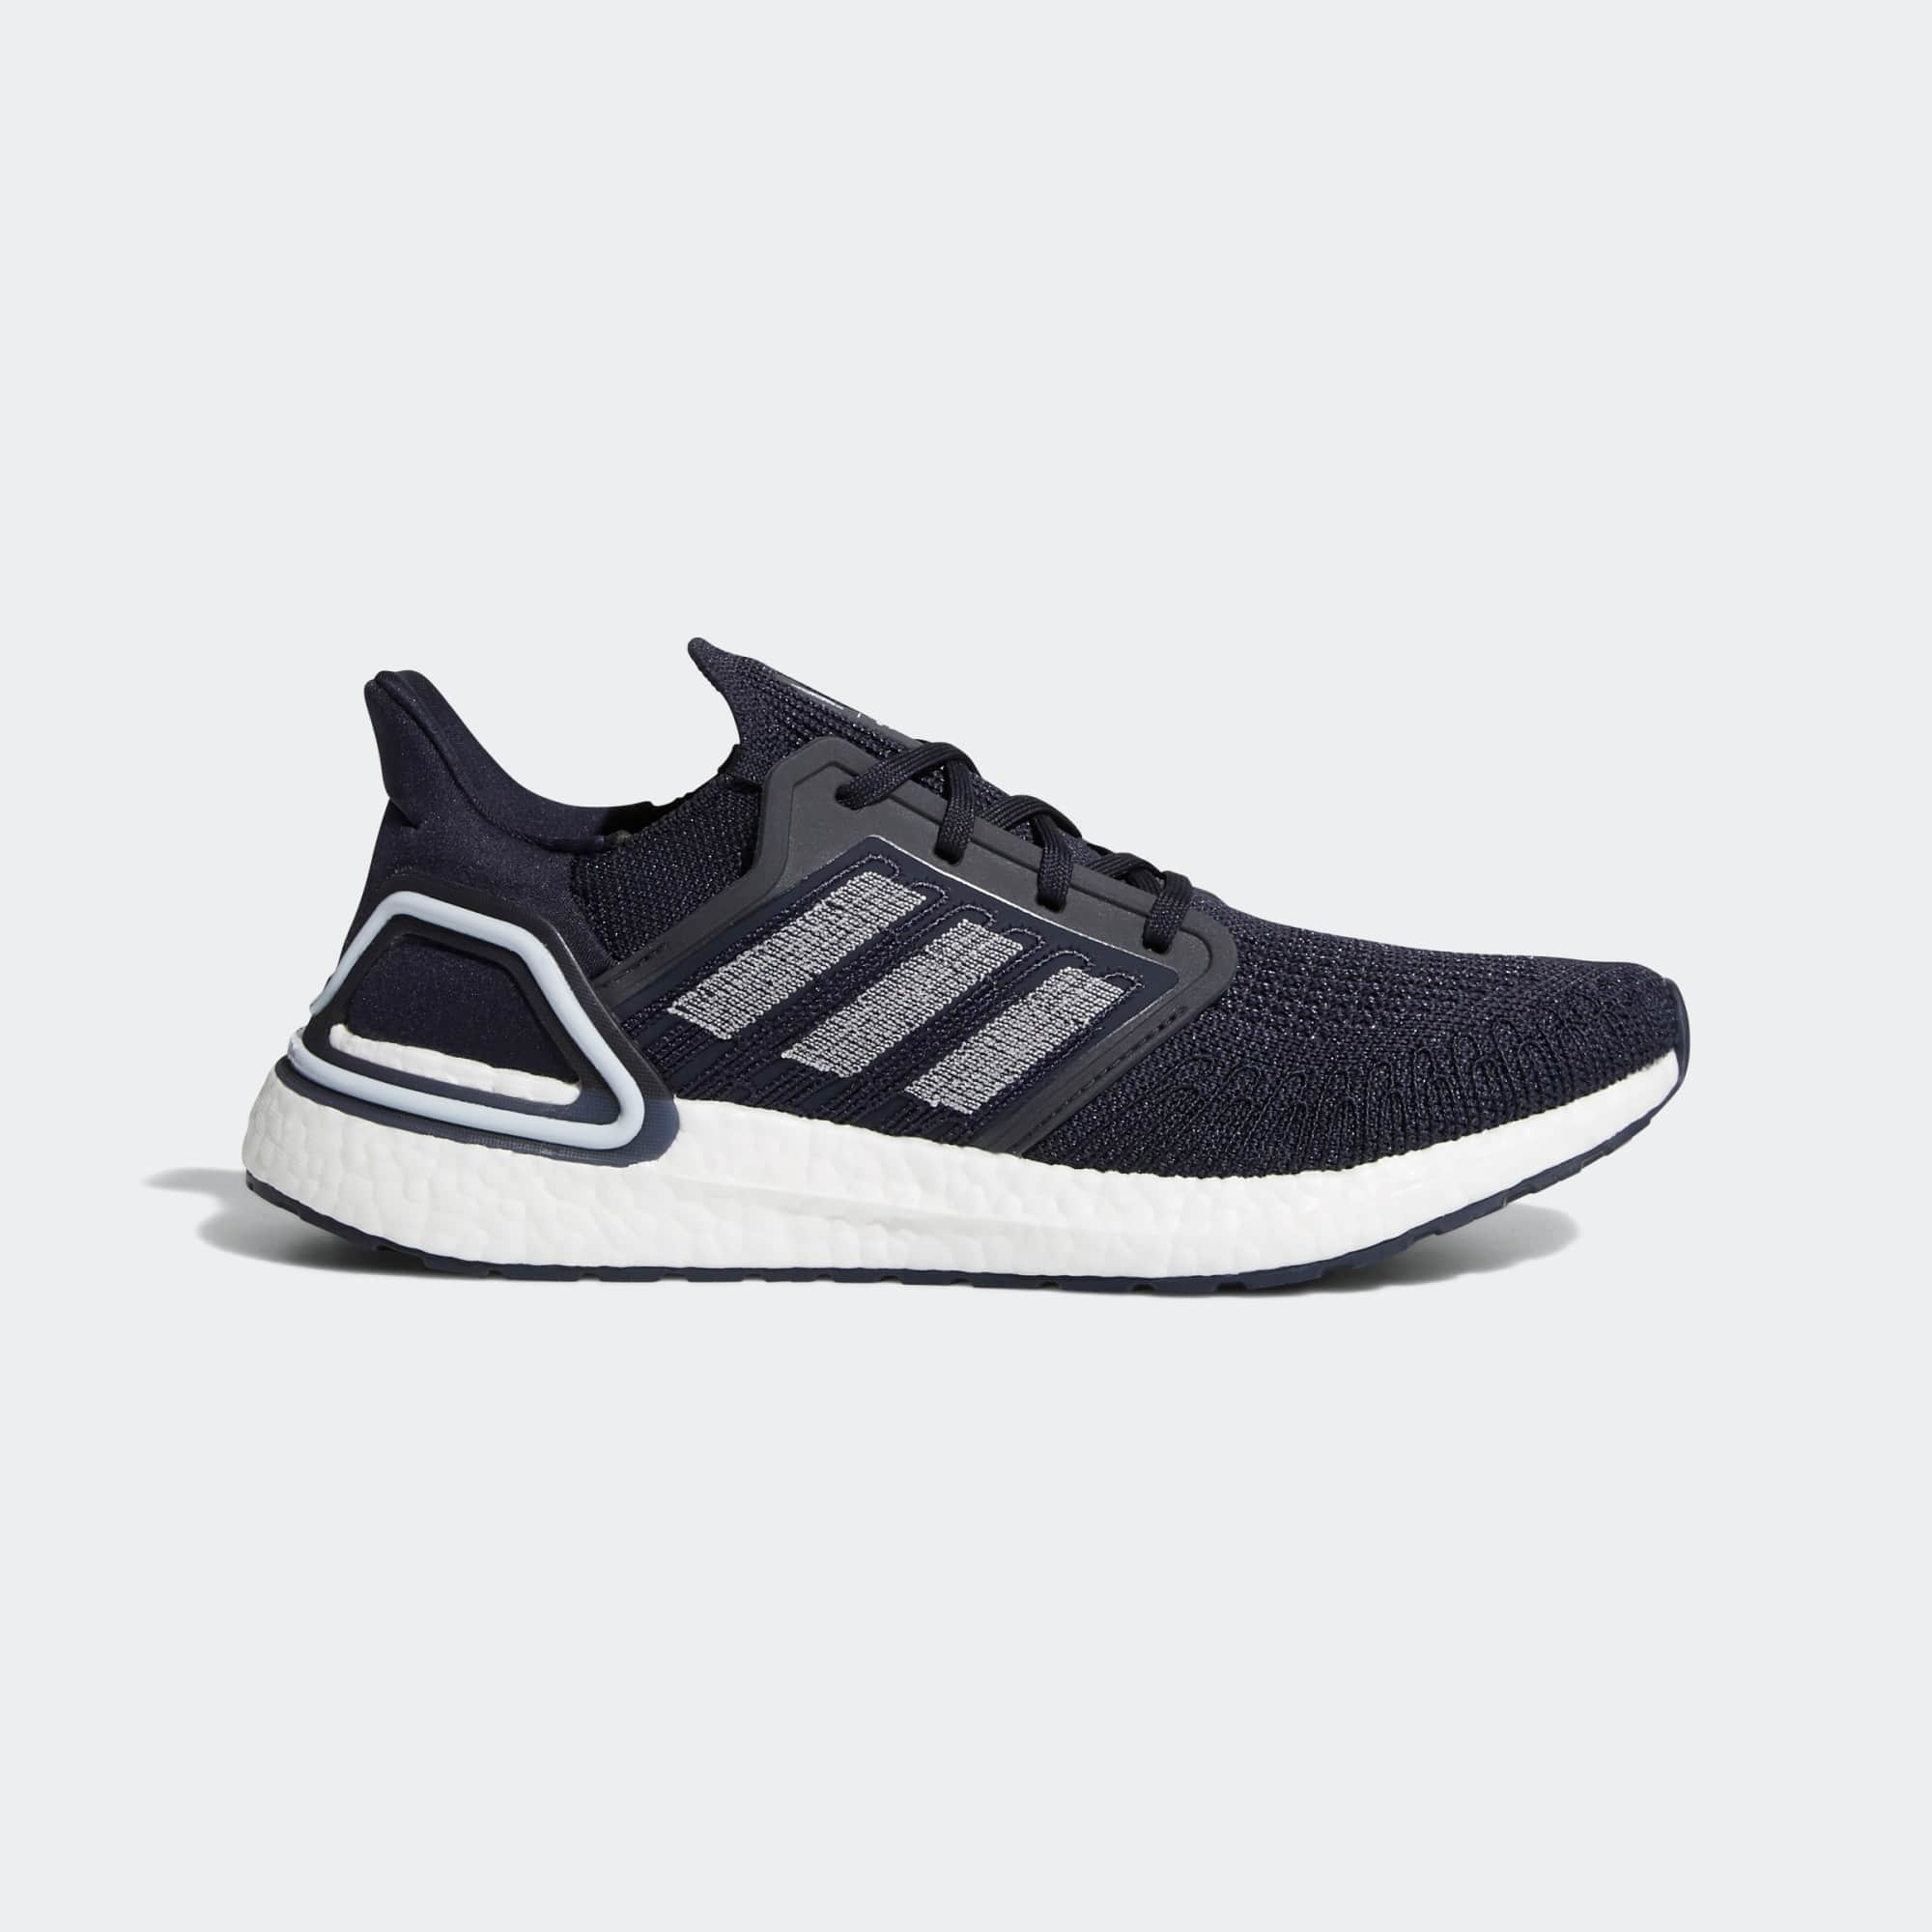 adidas Men's Ultraboost 20 SB Shoes (Legend Ink/Legend Ink/Cloud White)